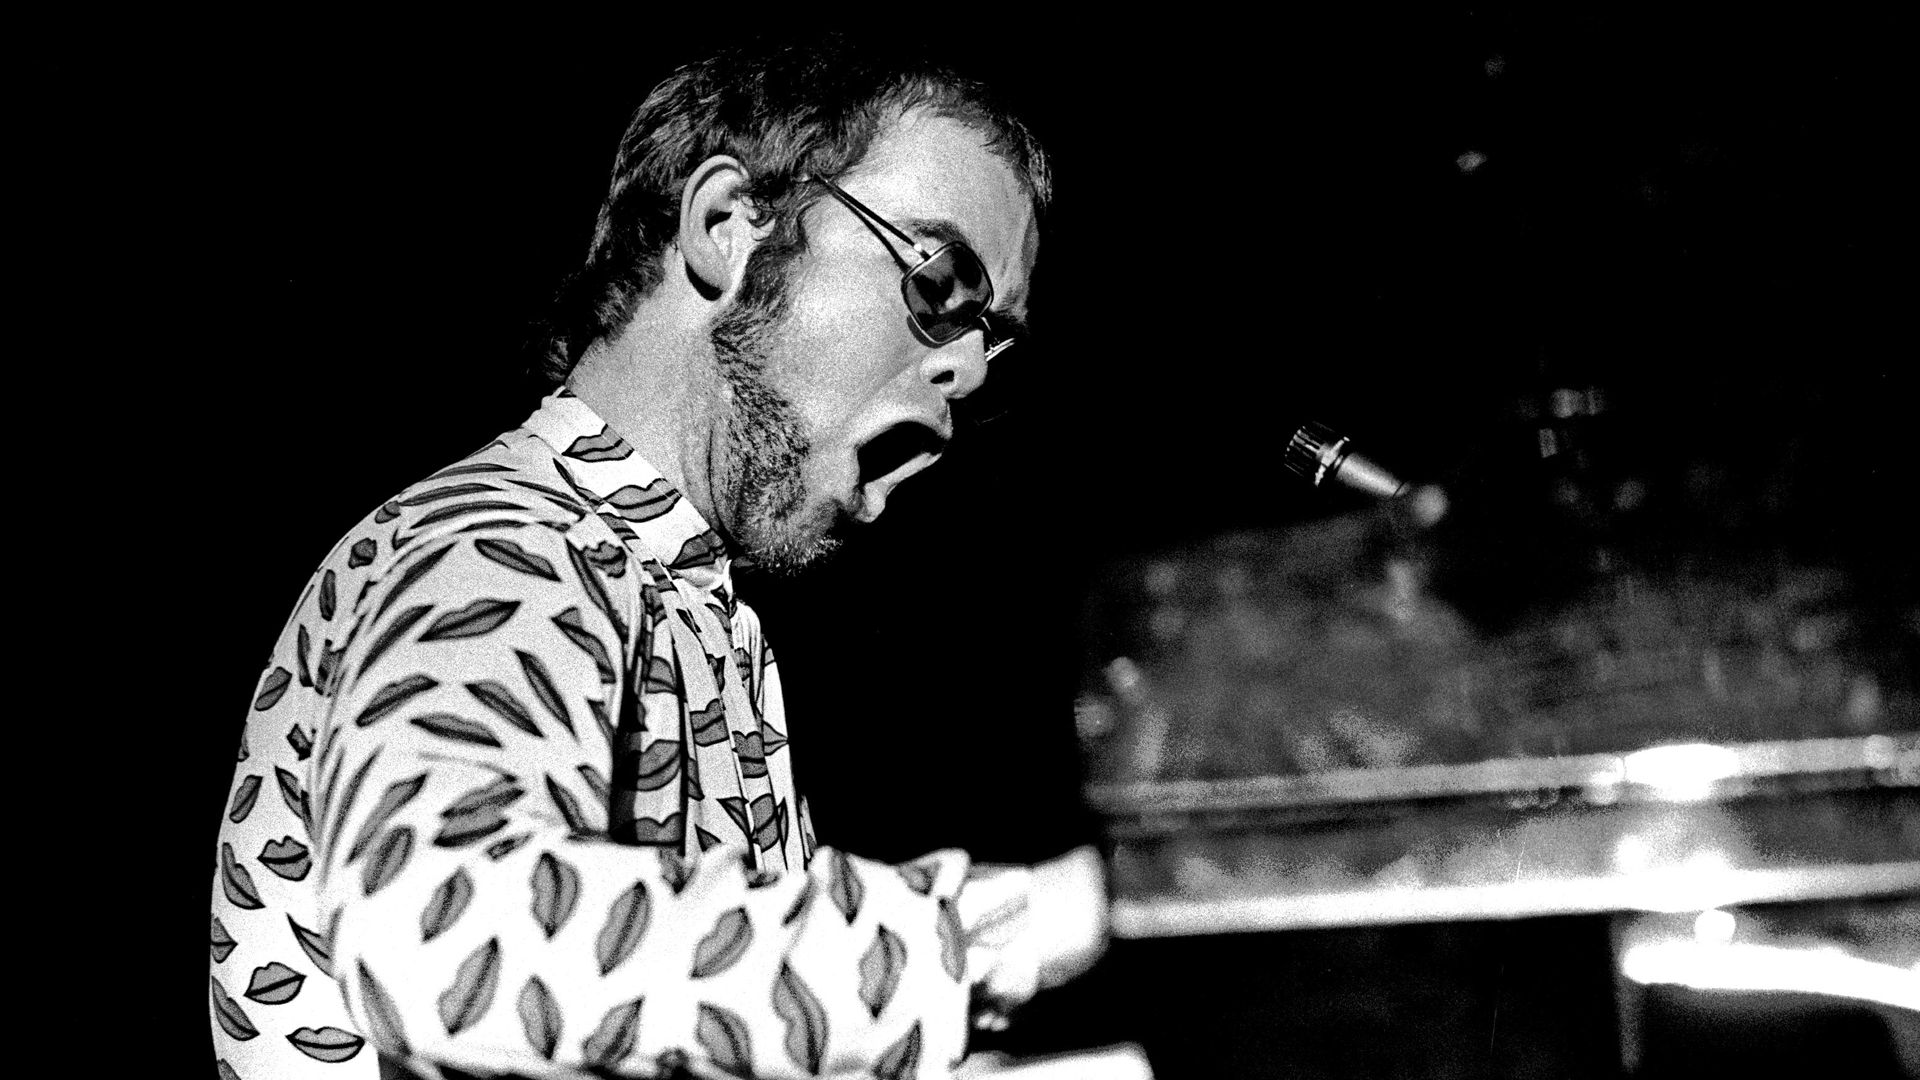 monochrome elton john wallpaper 60600